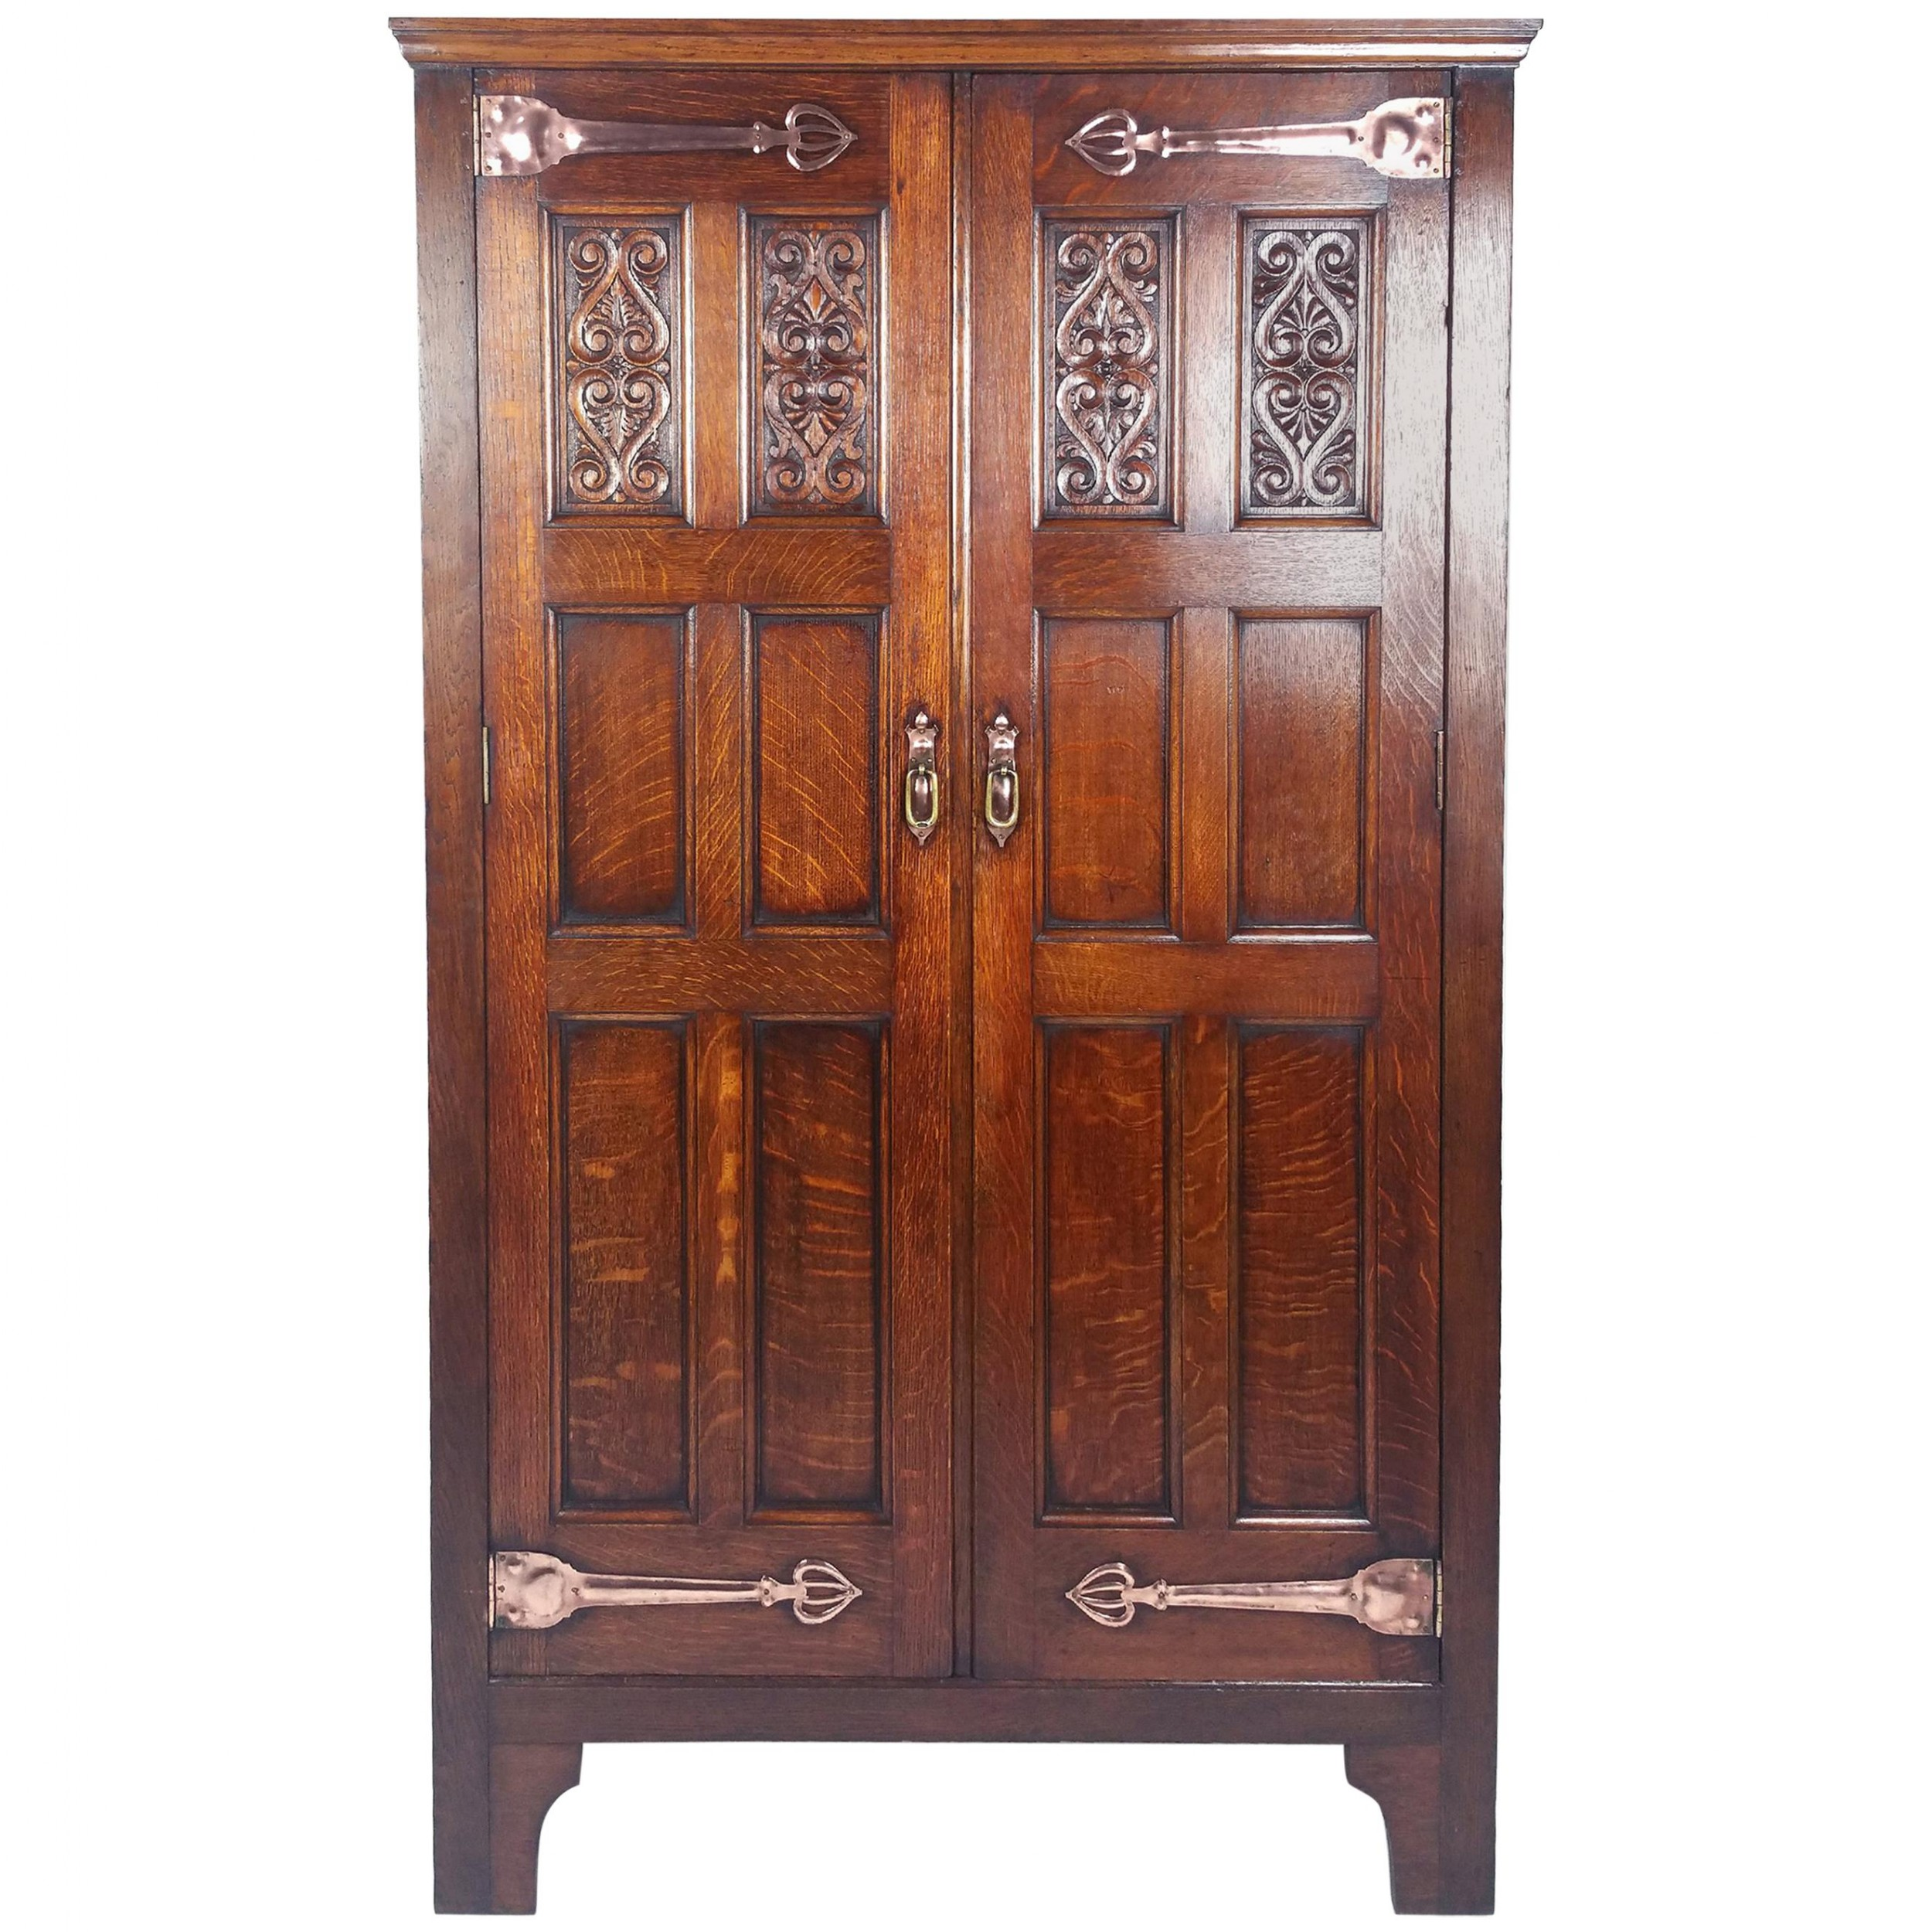 late 19th c arts and crafts 2 door hall wardrobe with ornate mounts